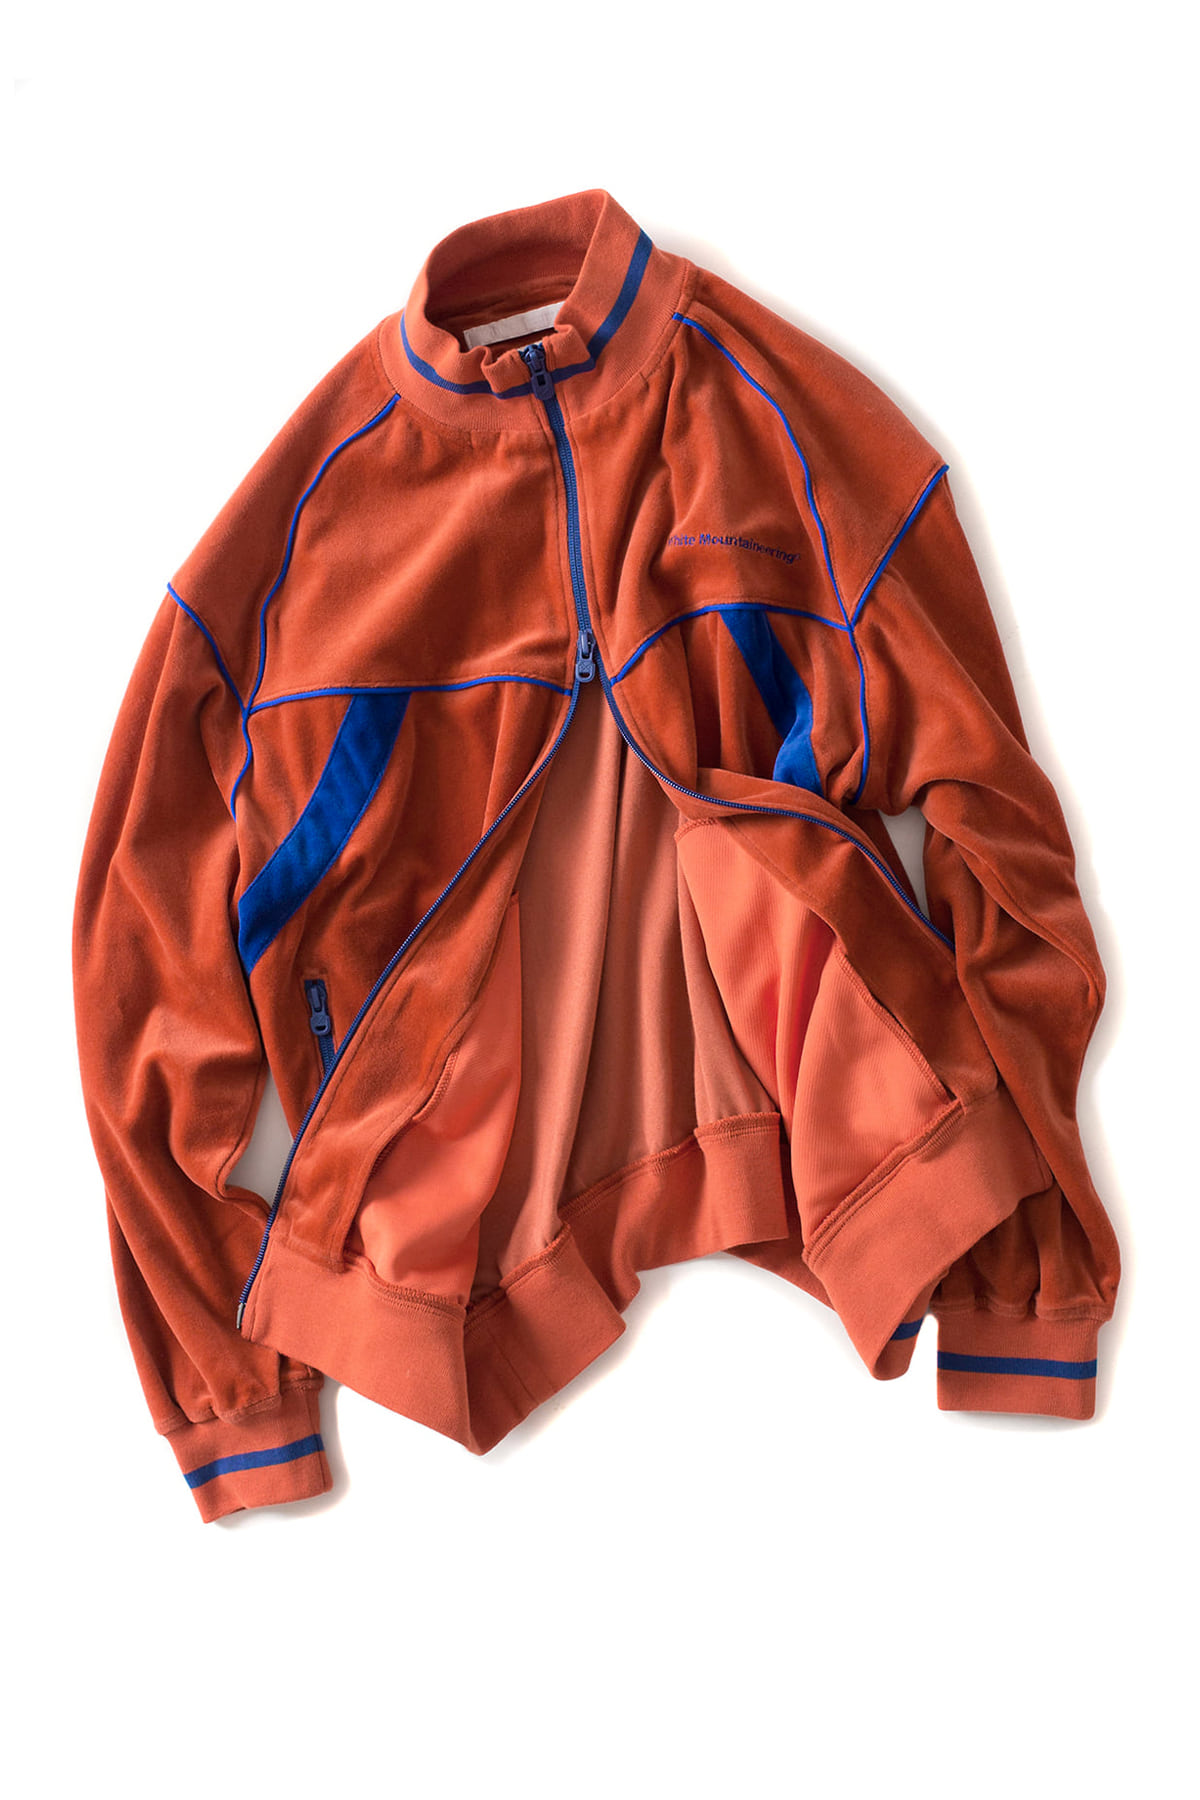 WHITE MOUNTAINEERING : Velour Track Top (Orange)